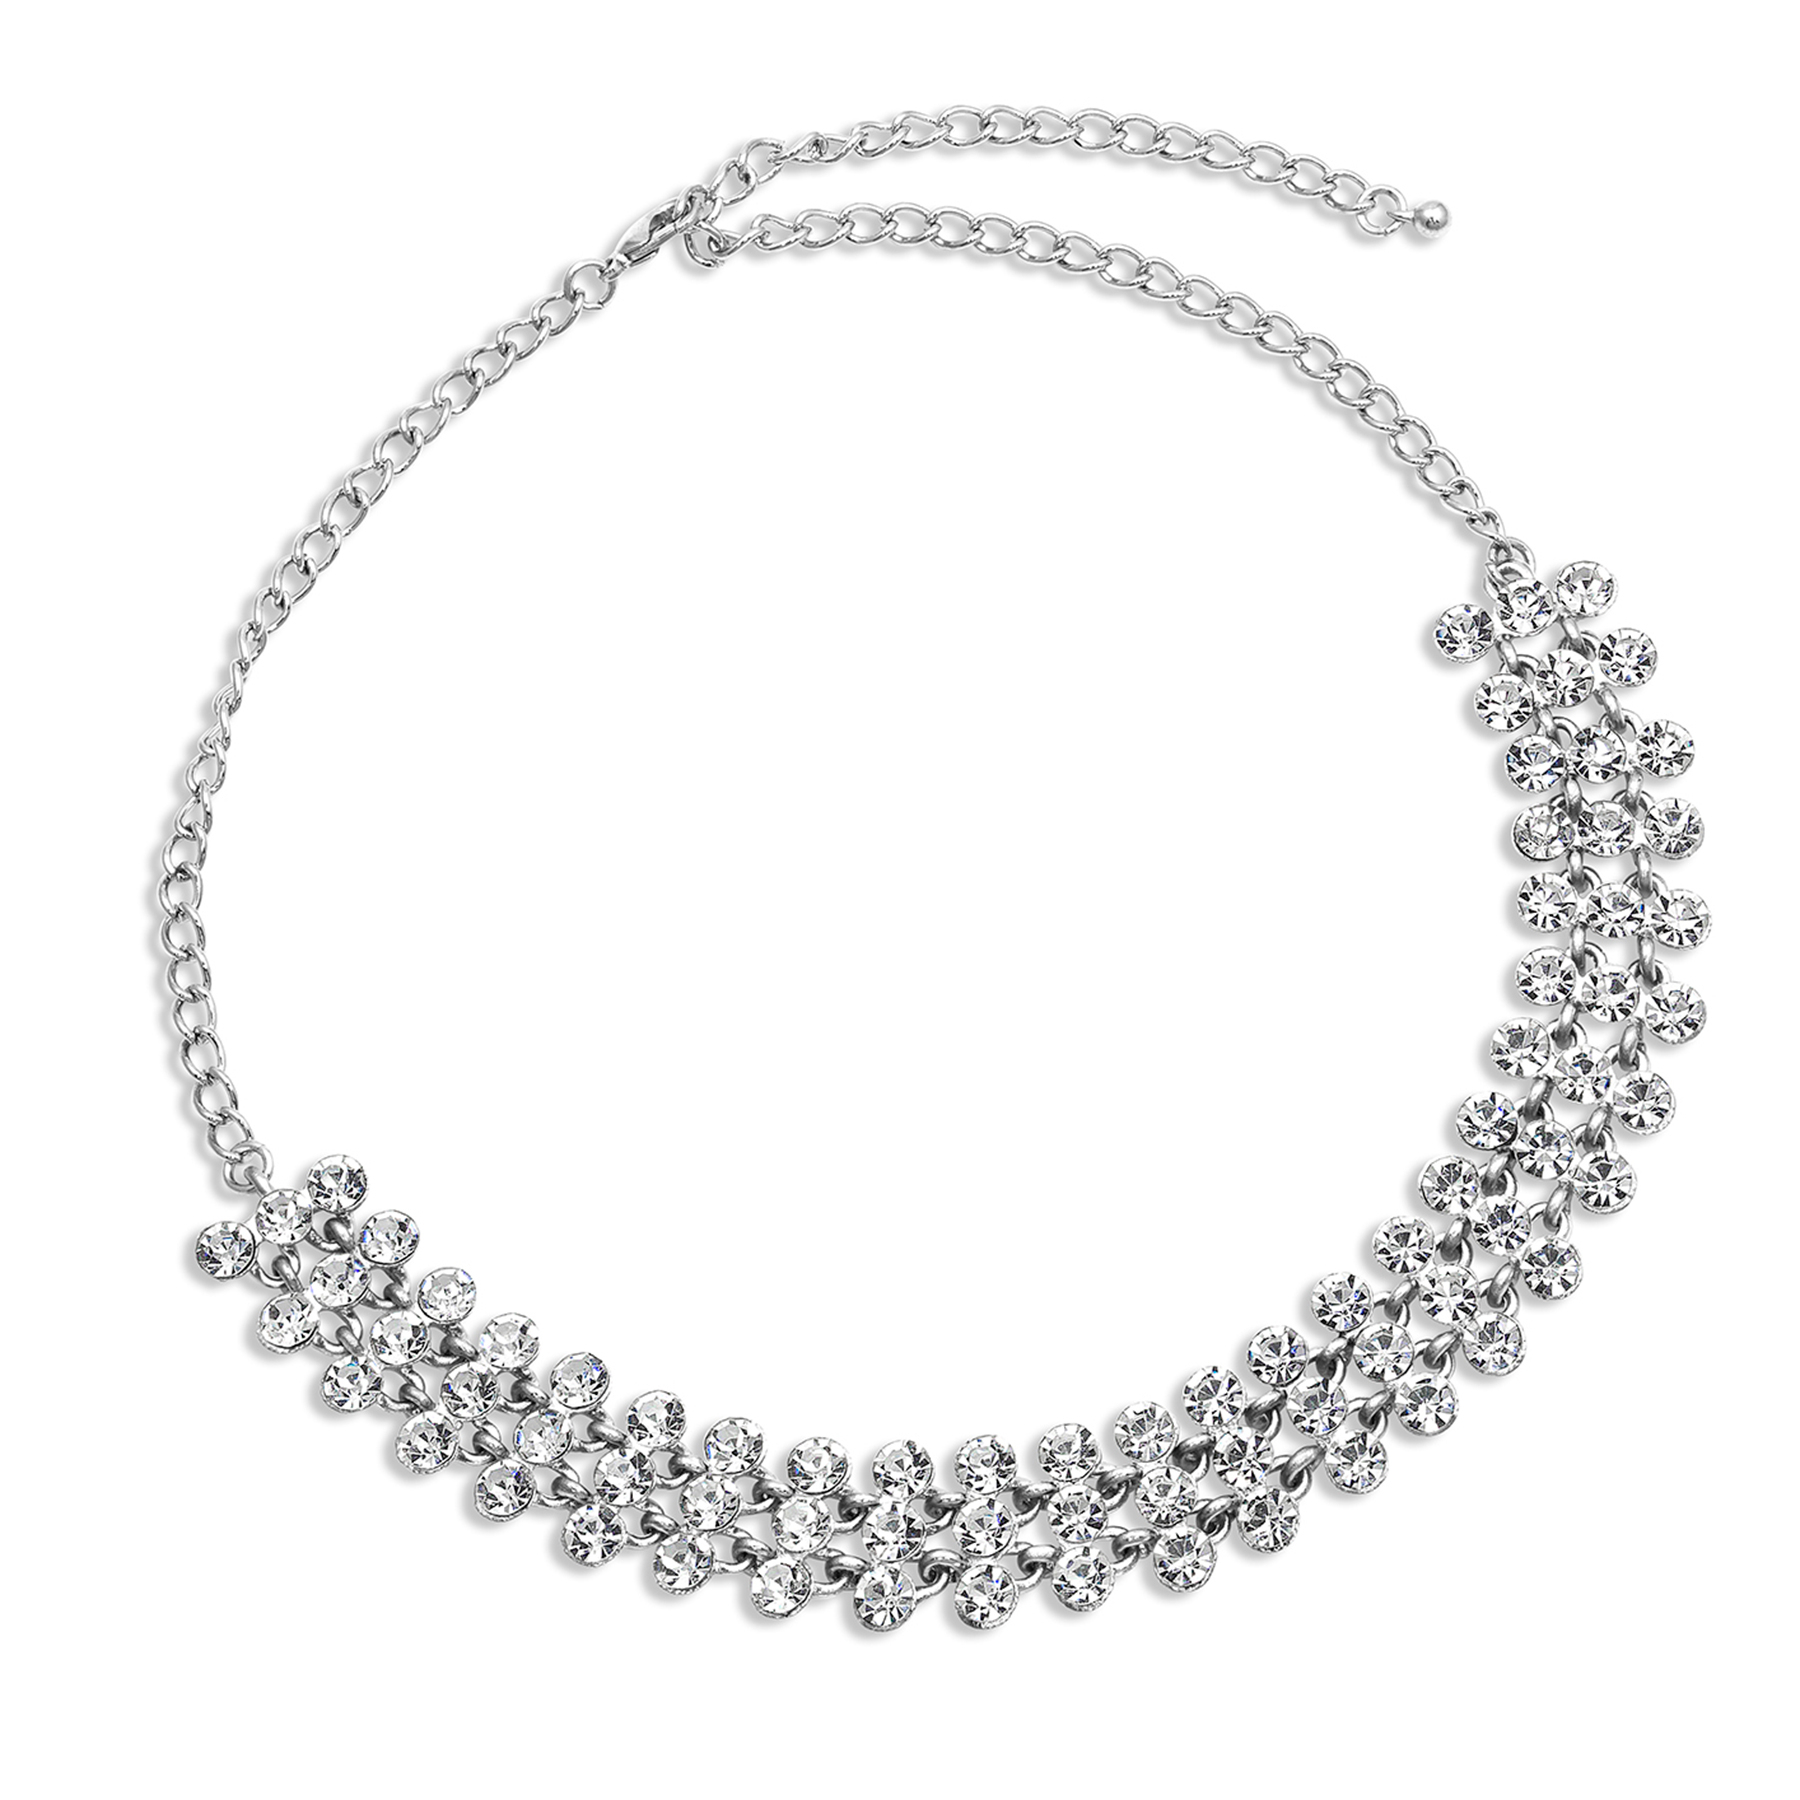 Search Results For: 'silver Necklace Slider Chokers For Women Pertaining To Current Woven Fabric Choker Slider Necklaces (Gallery 5 of 25)